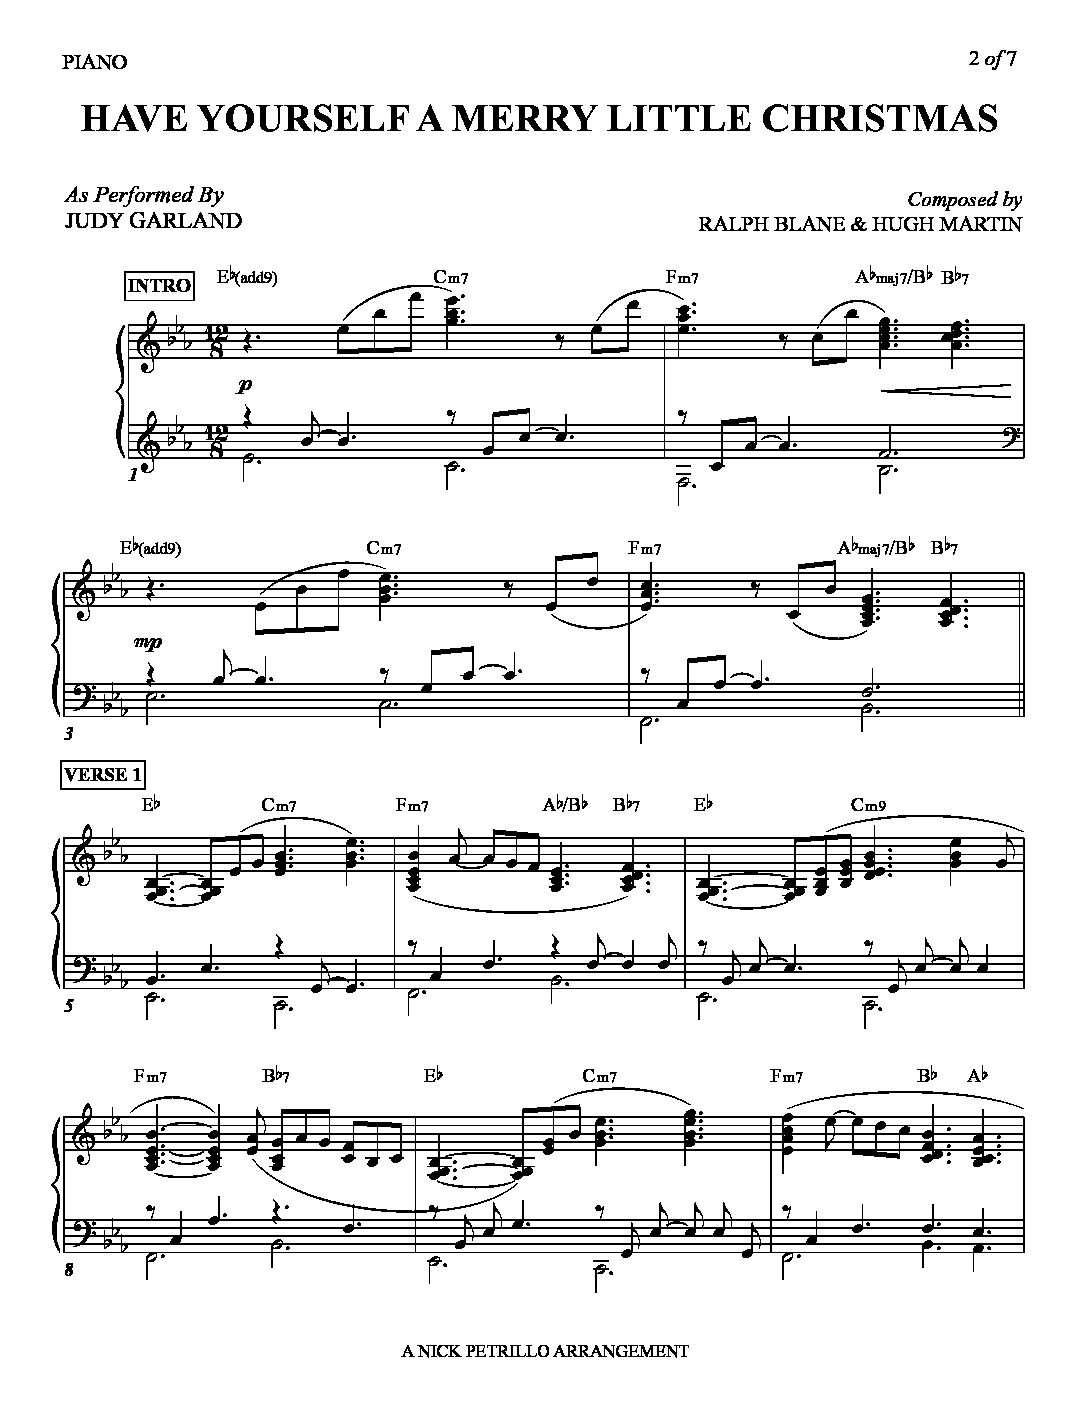 Have Yourself A Merry Little Christmas Lead Sheet.Have Yourself A Merry Little Christmas